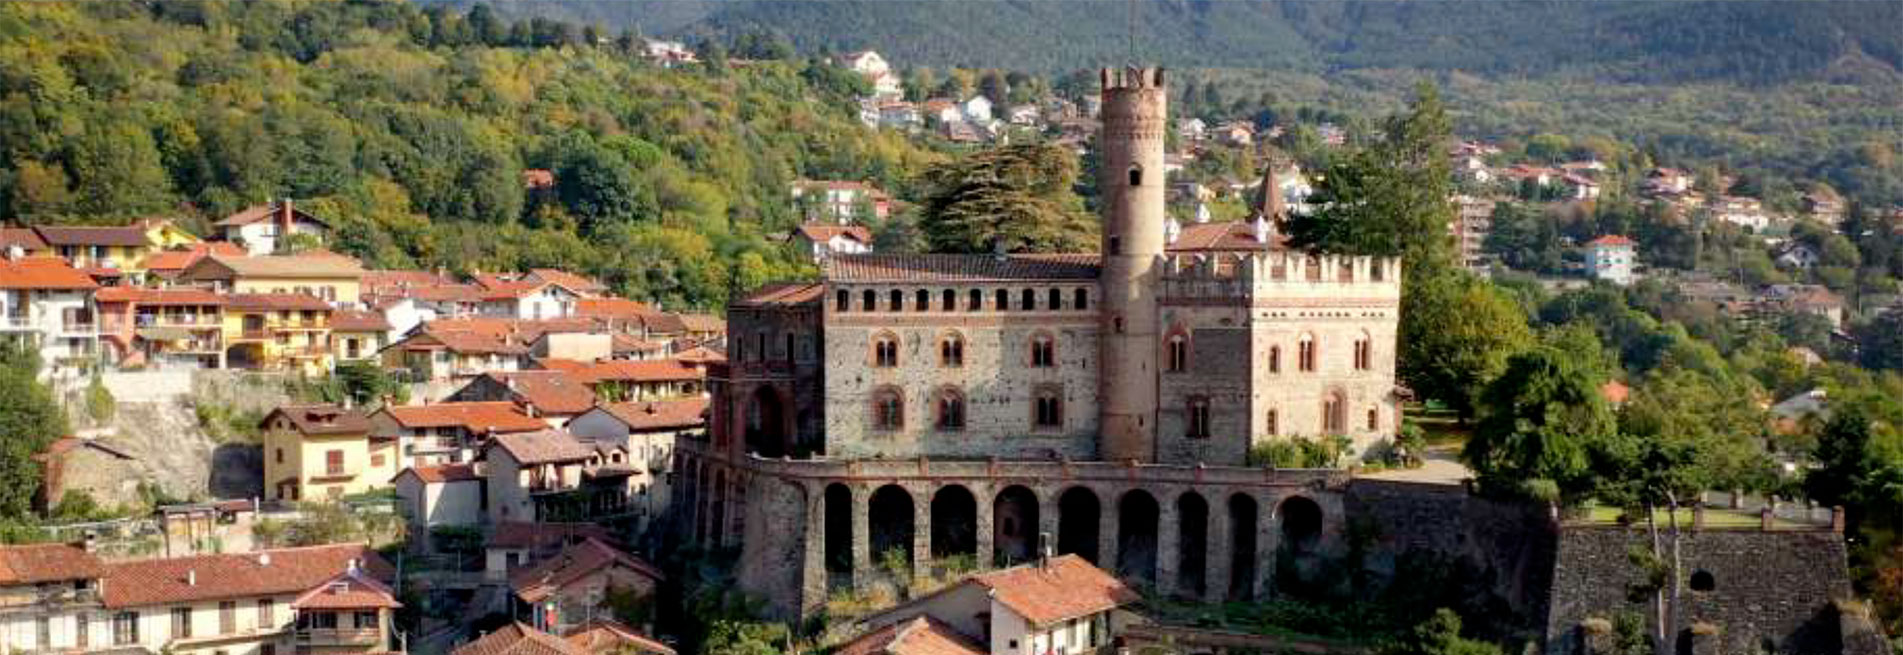 Castello di Villardora - Location eventi